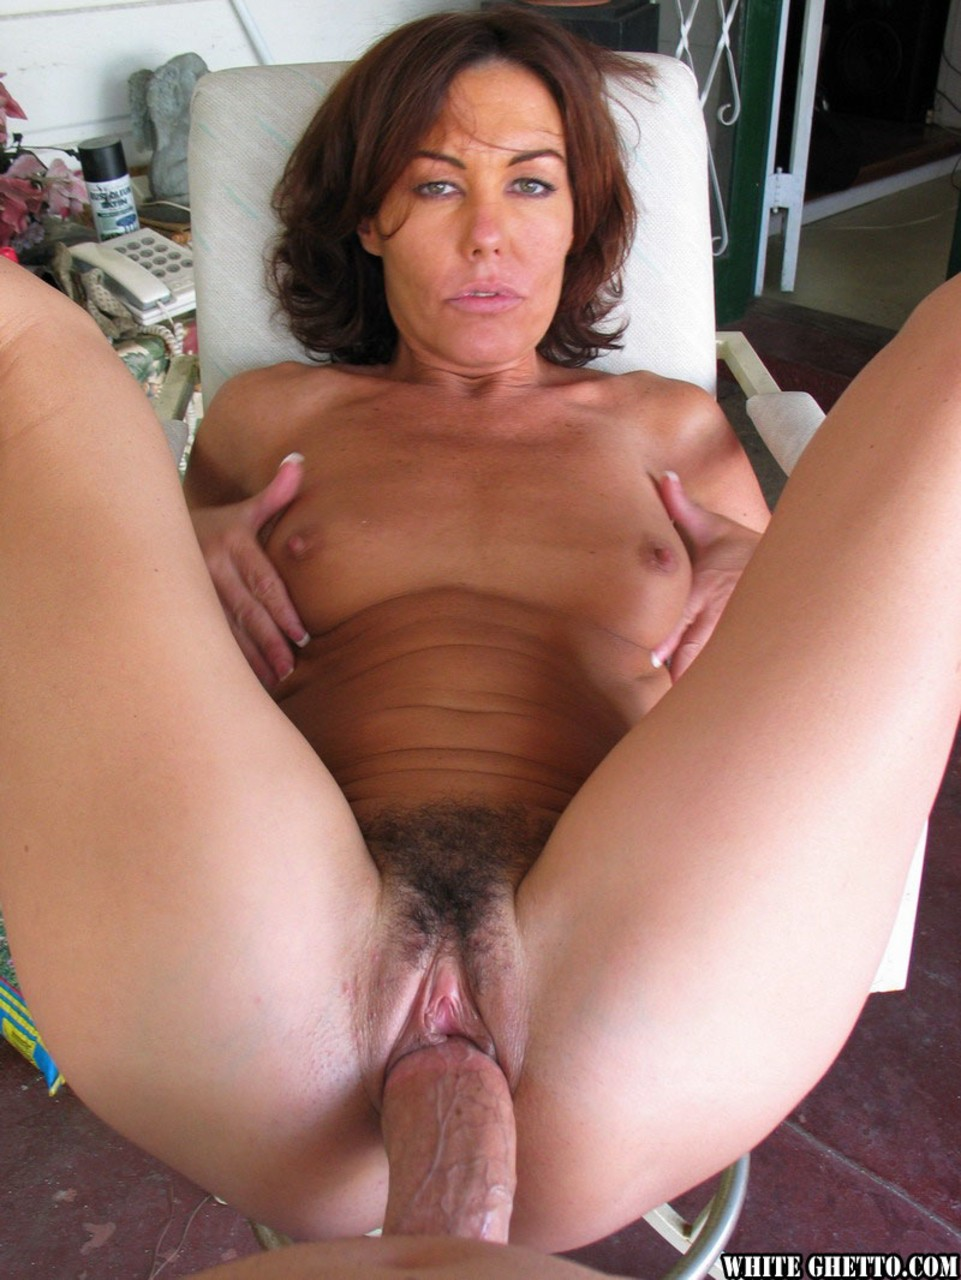 Hd Pov Mom